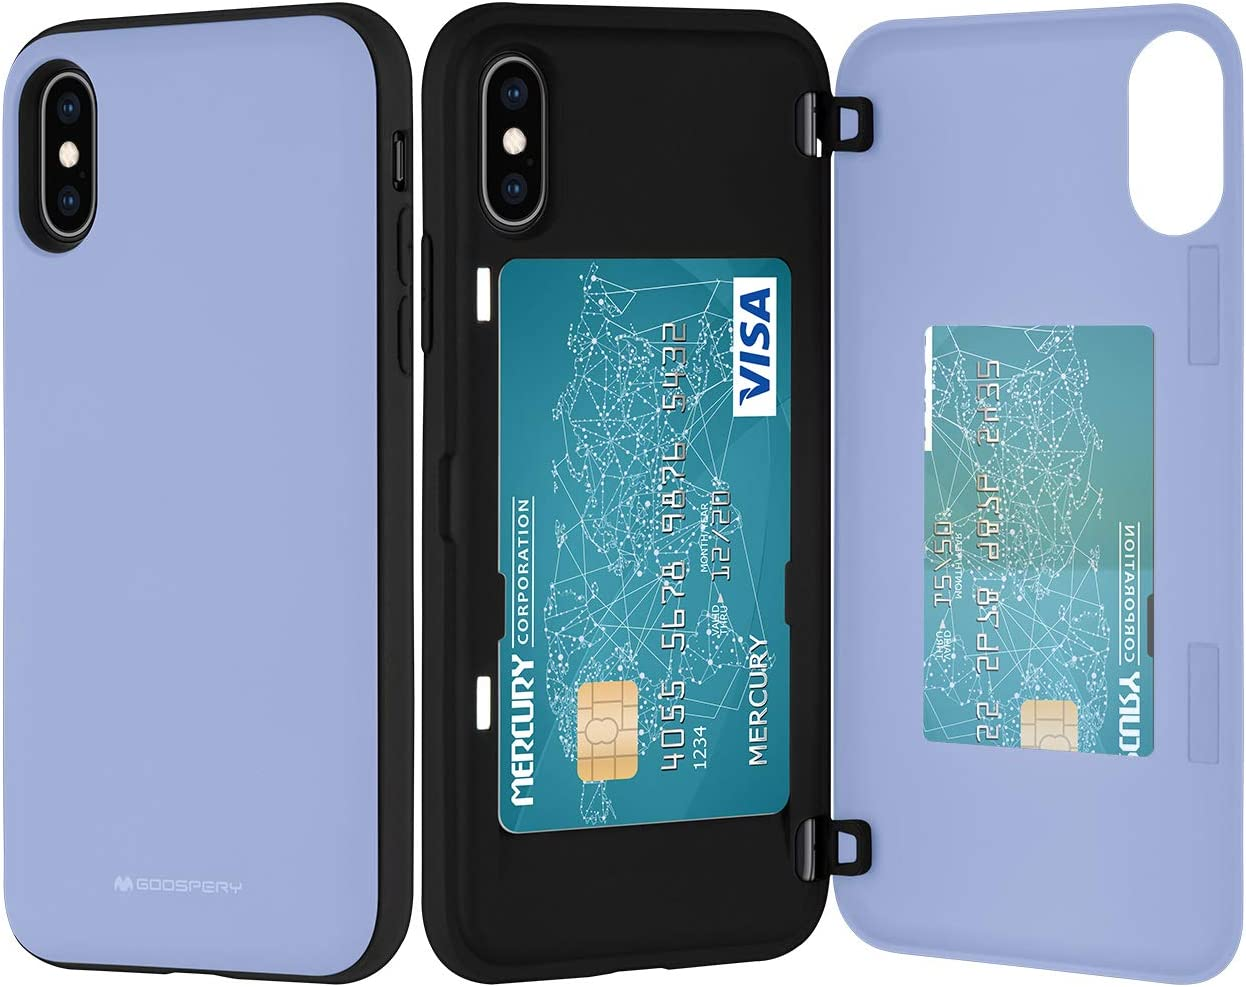 Goospery iPhone Xs Case, iPhone X Wallet Case with Card Holder, Protective Dual Layer Bumper Phone Case (Lilac Purple) IPX-MDB-PPL